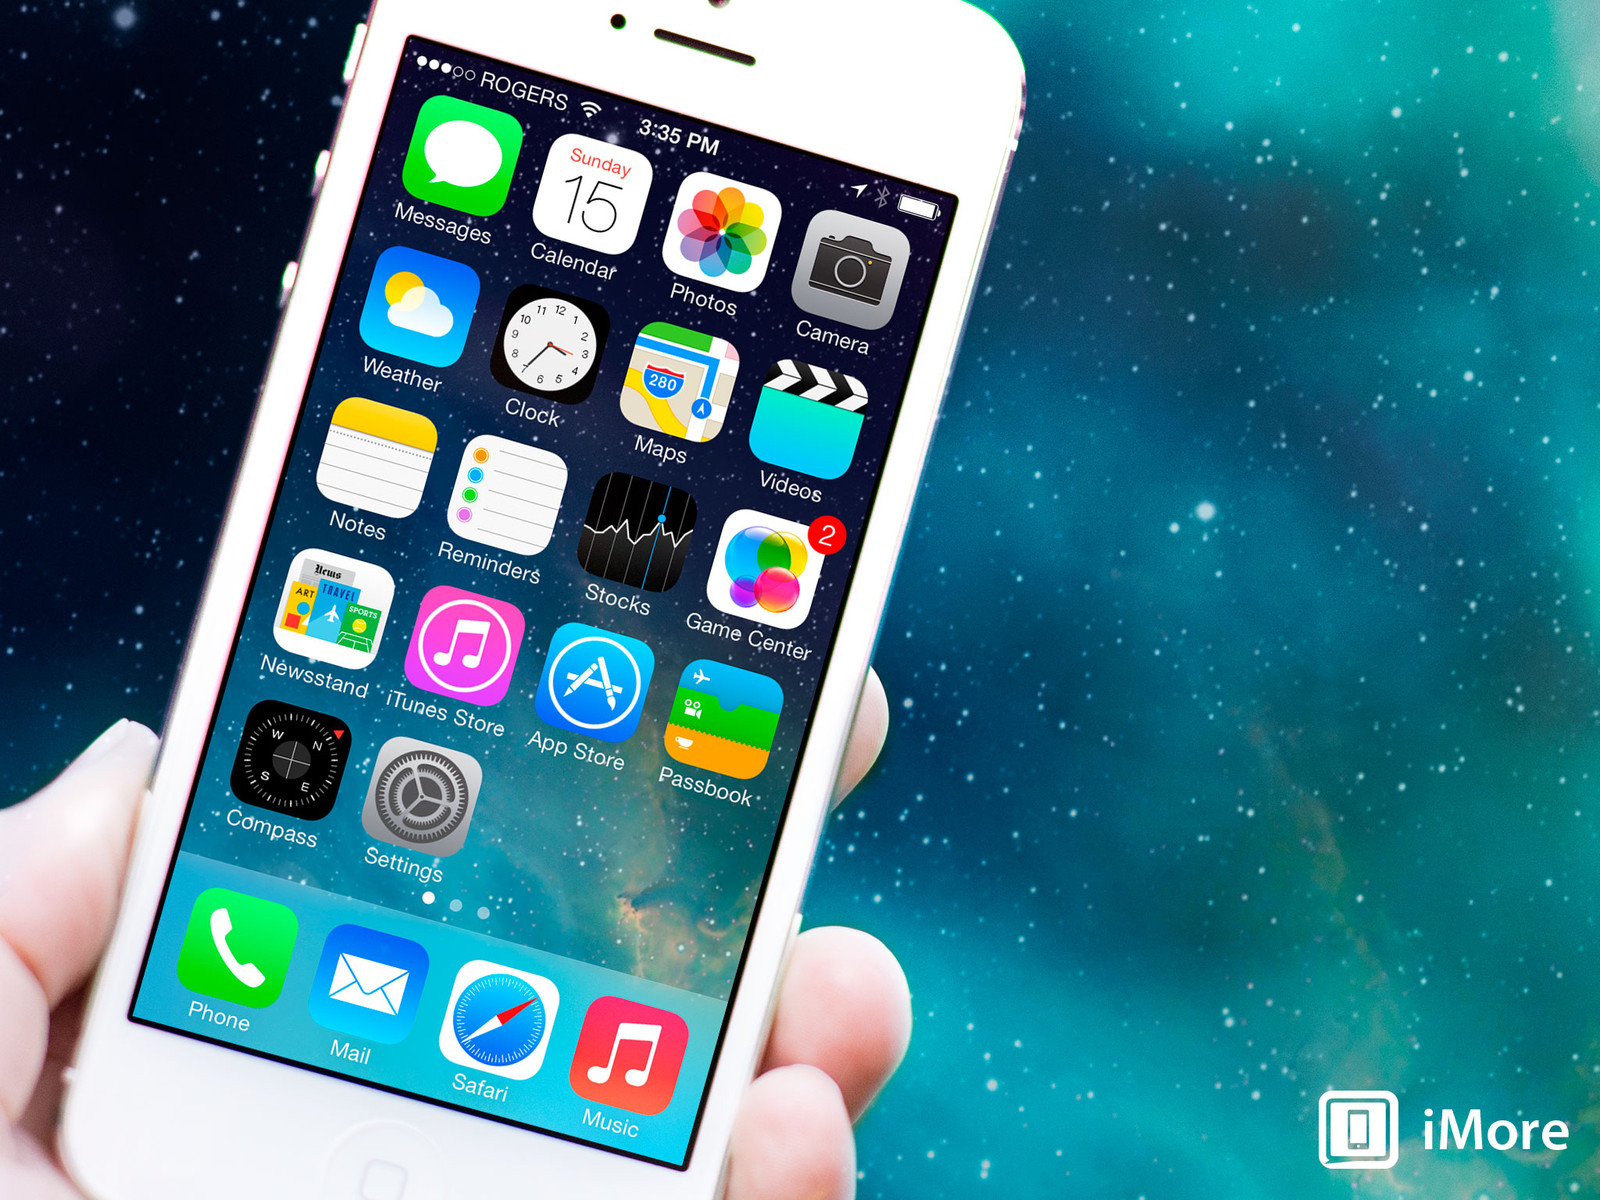 Iphone 5s Original Home Screen Layout ios 7 review imore 1600x1200